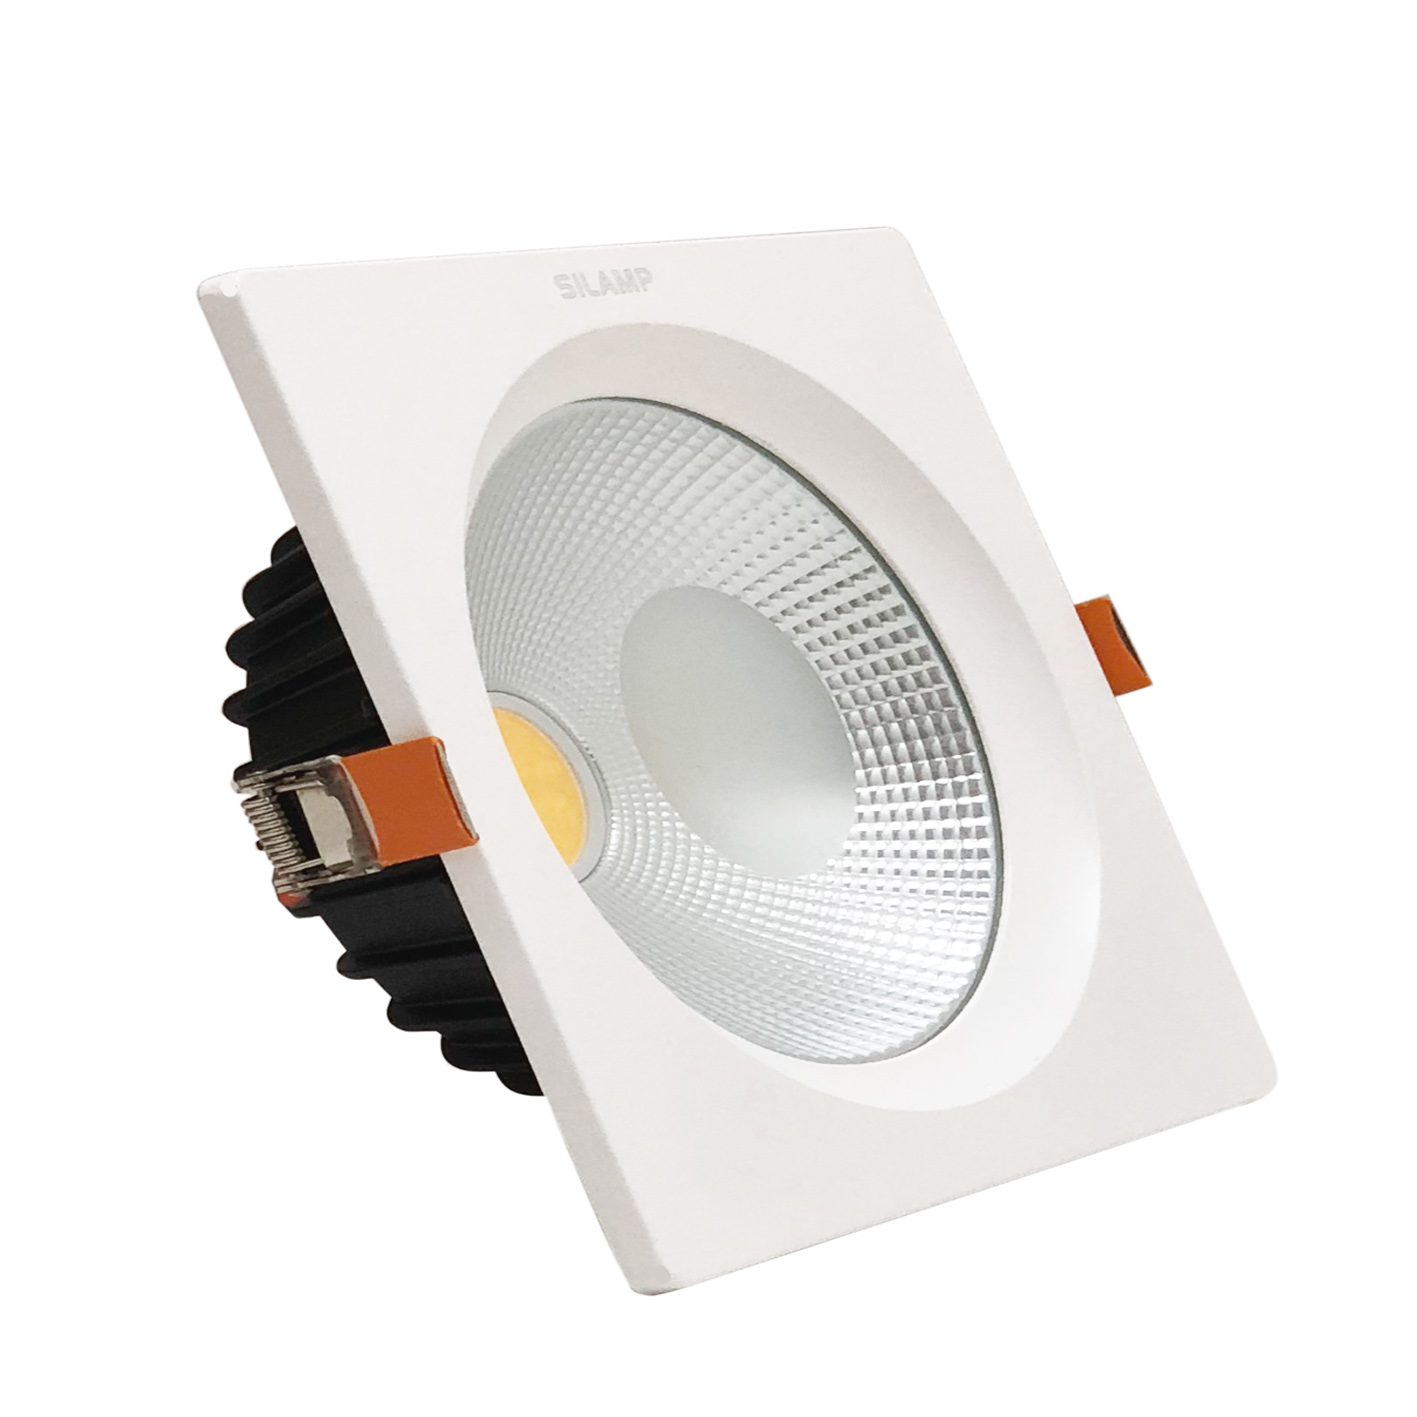 Faro led da incasso 30W Quadrato controsoffitto Cob incluso Driver